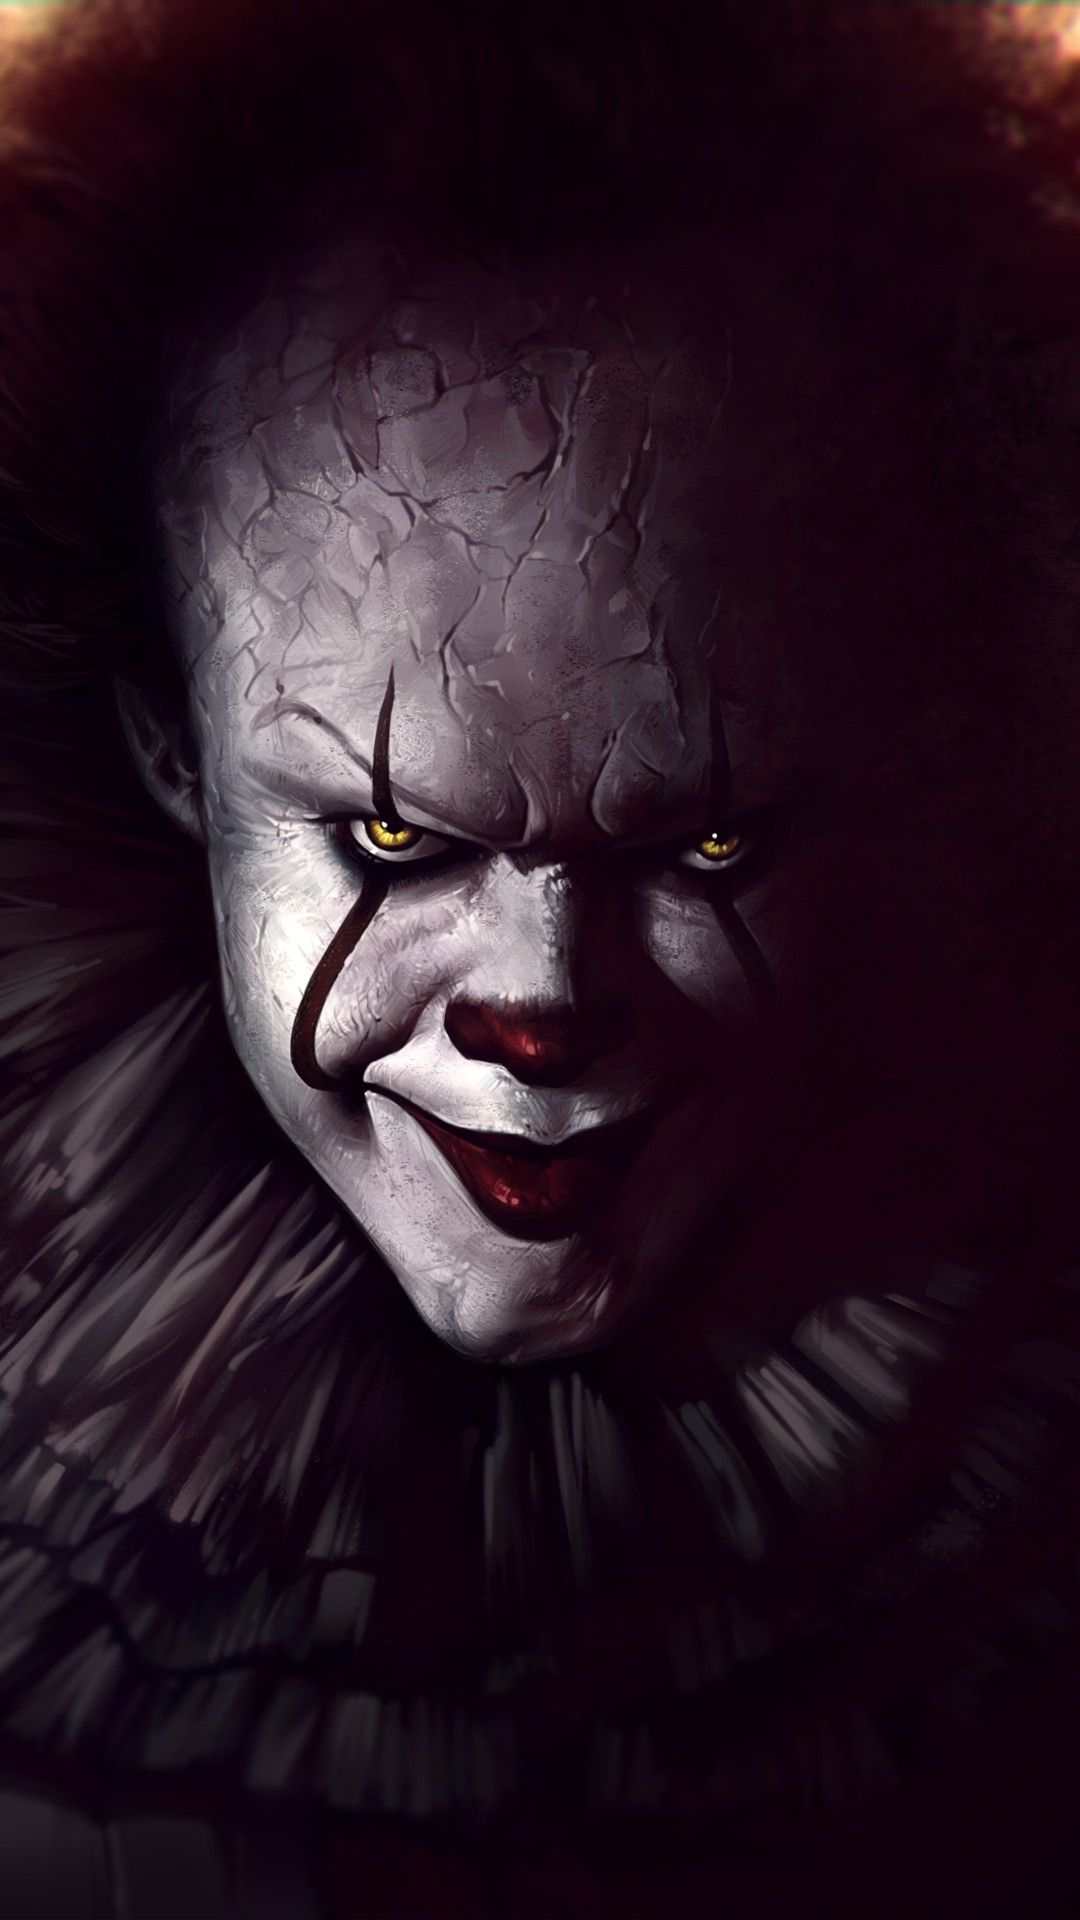 1080x1920 Pennywise the Dancing Clown Wallpapers | HD Wallpapers | ID #22255